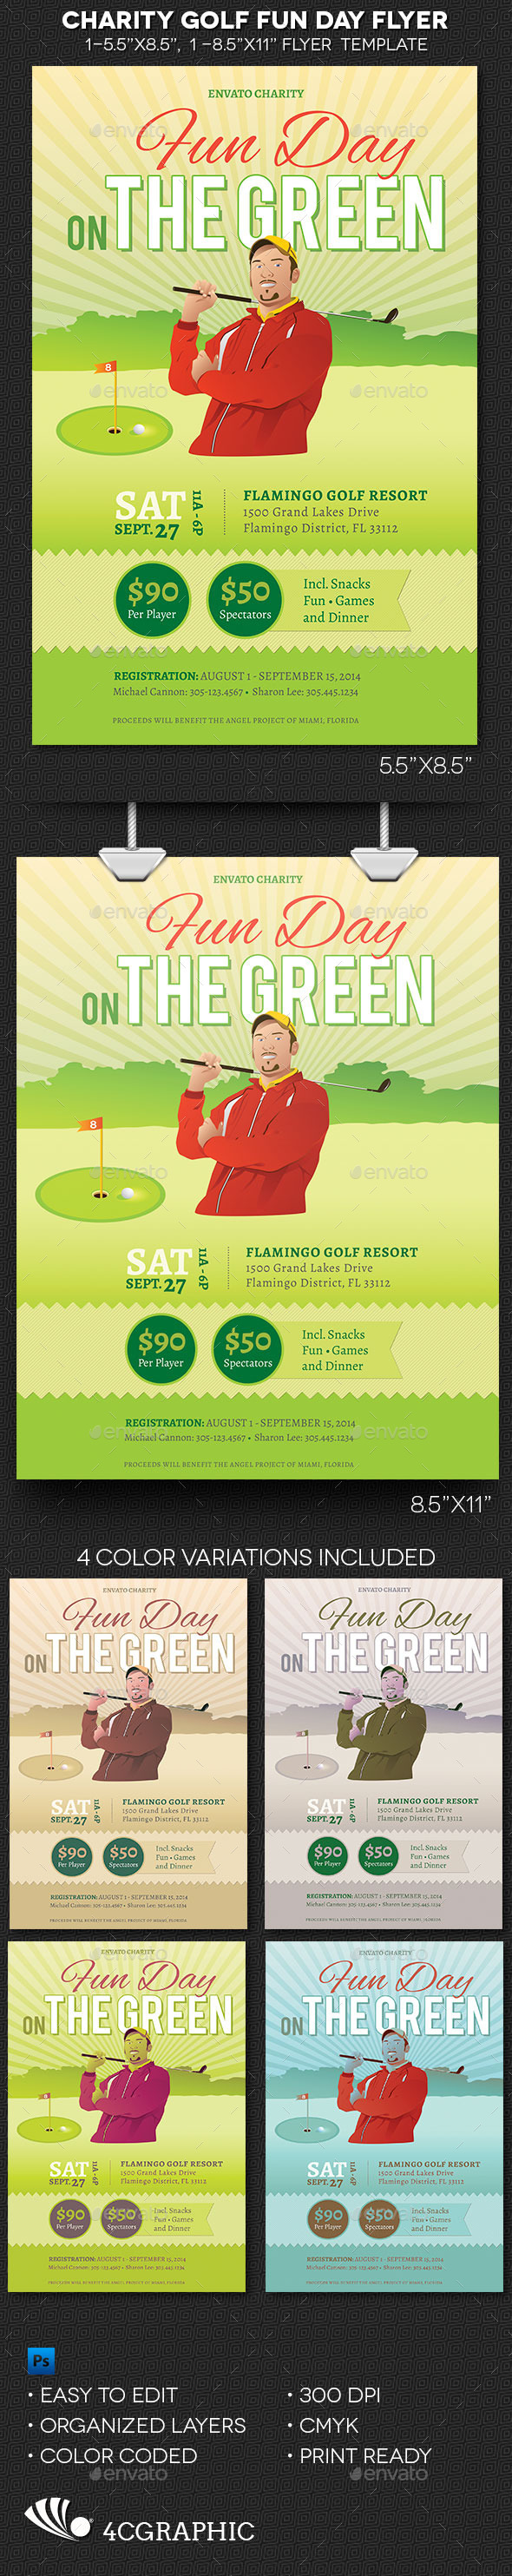 GraphicRiver Charity Golf Fun Day Flyer Template 8942637